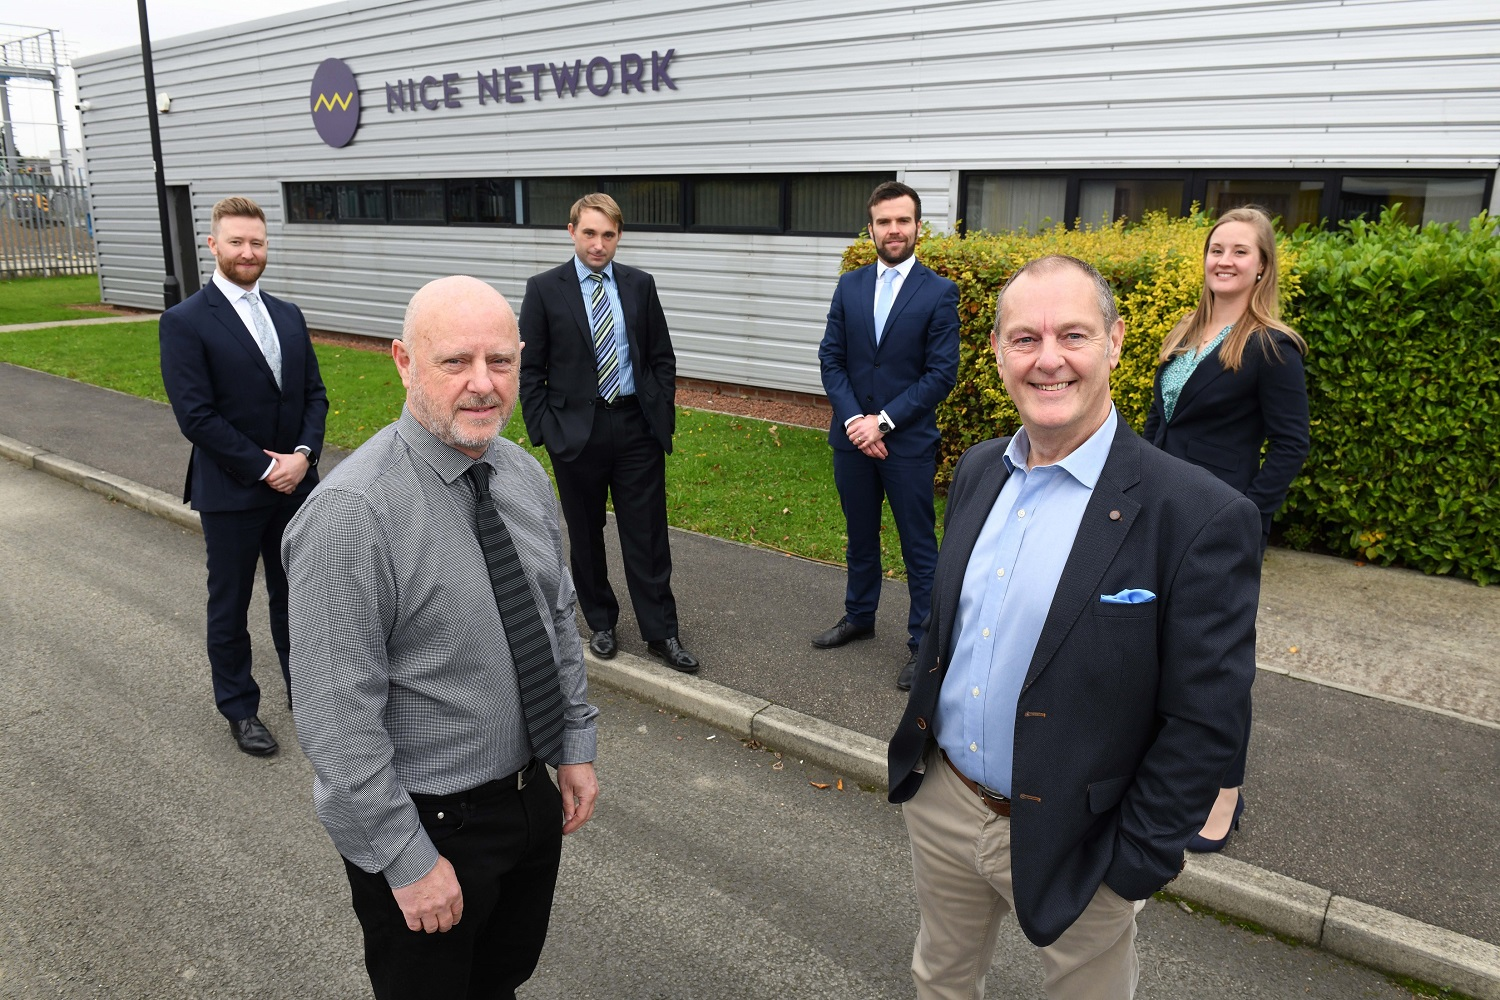 LDC-backed Onecom makes second acquisition of 2020 with Nice Network deal